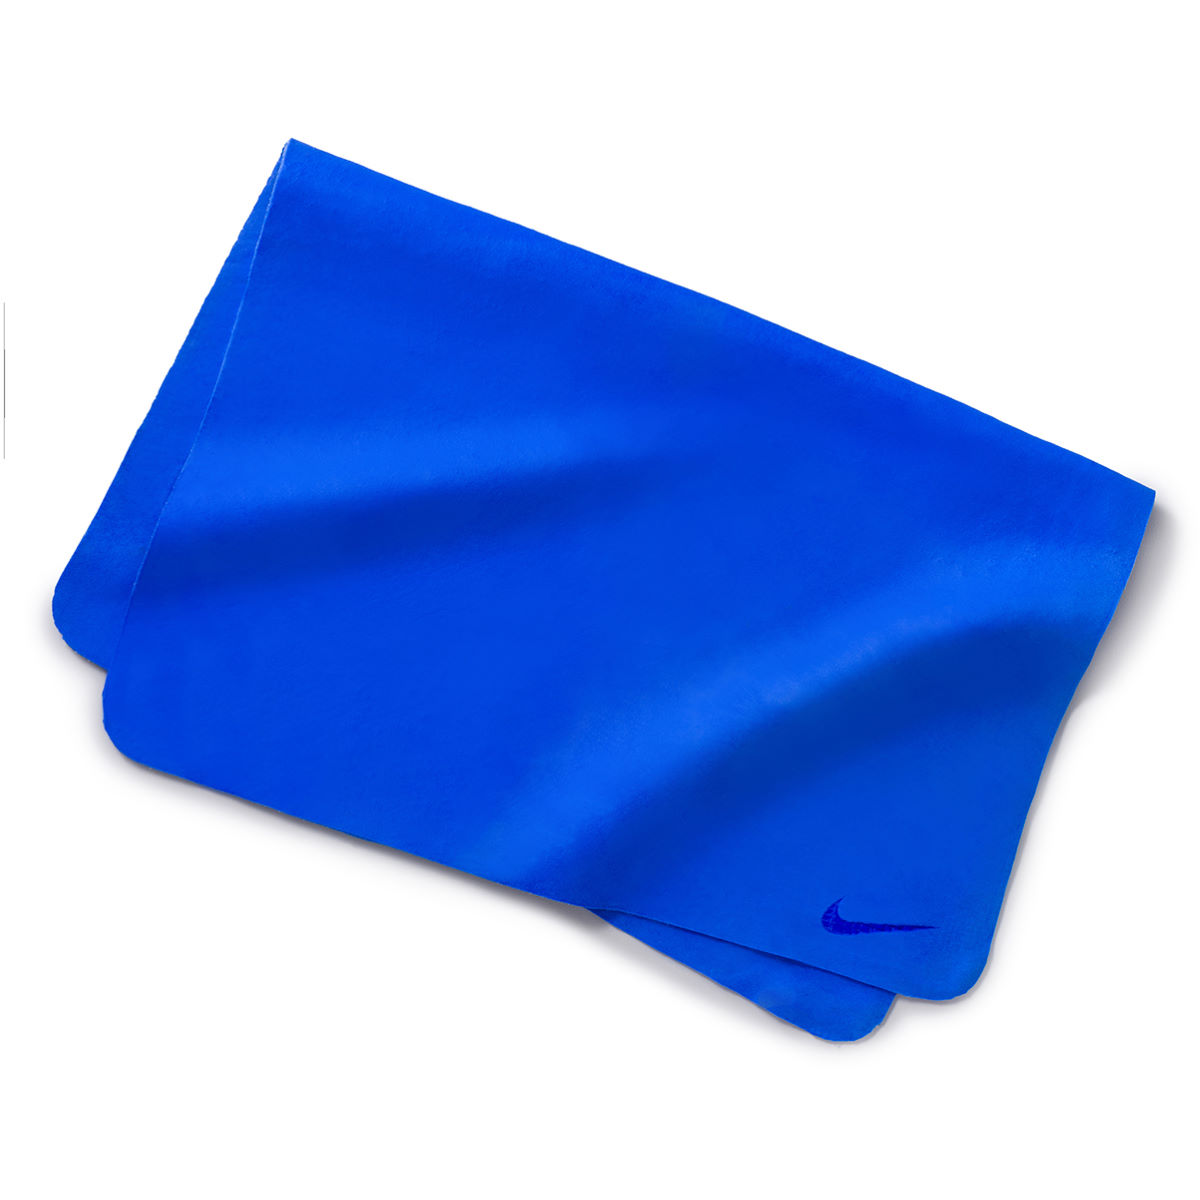 Nike Training Cool Towel: Nike Training Aids Large Swimming Towel Towels Review